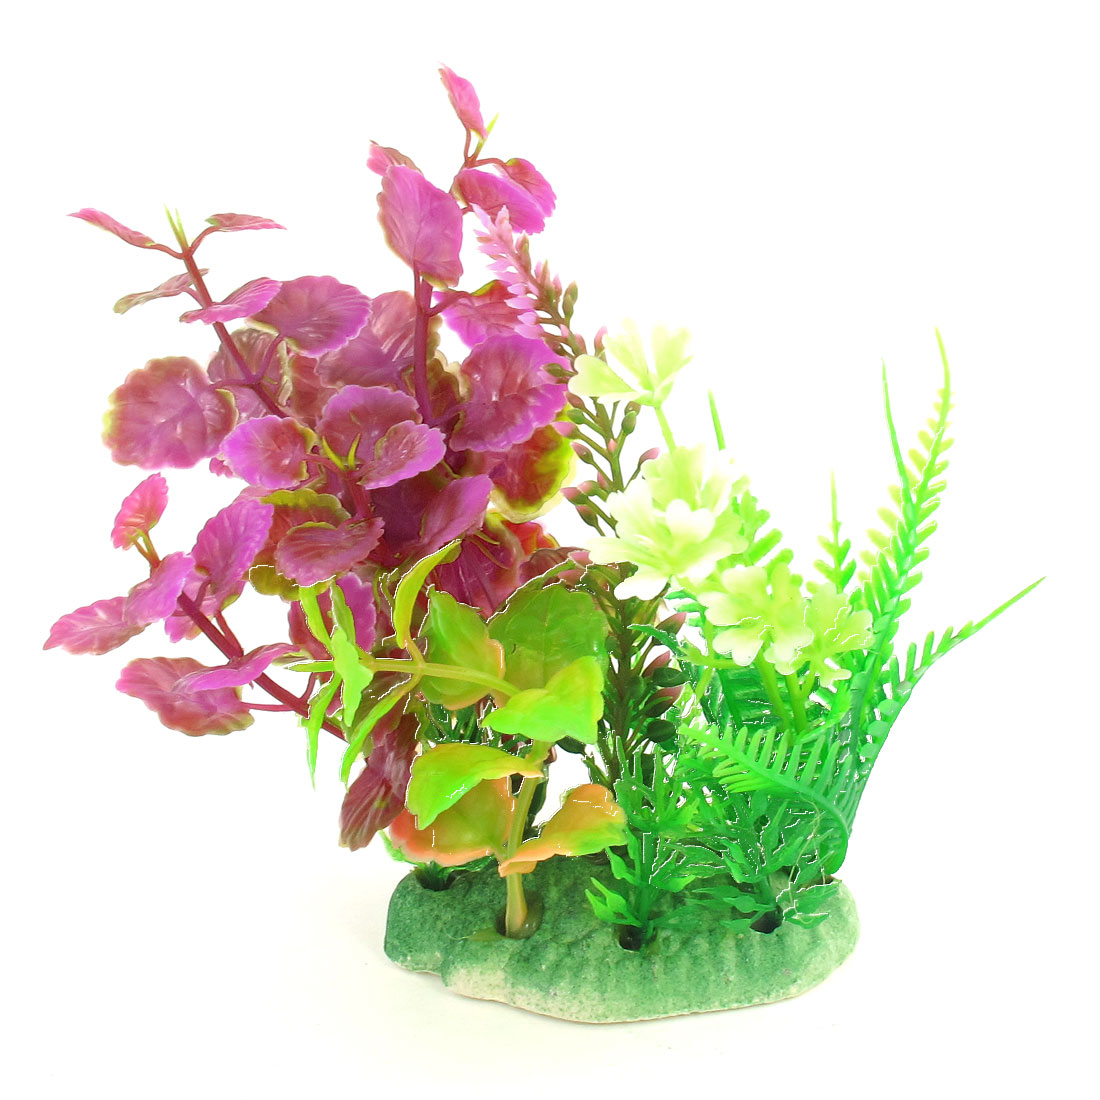 "Emulational Aquarium Grass Water Plant Adorn Green Magenta 5.1"" Height for Fishbowl"